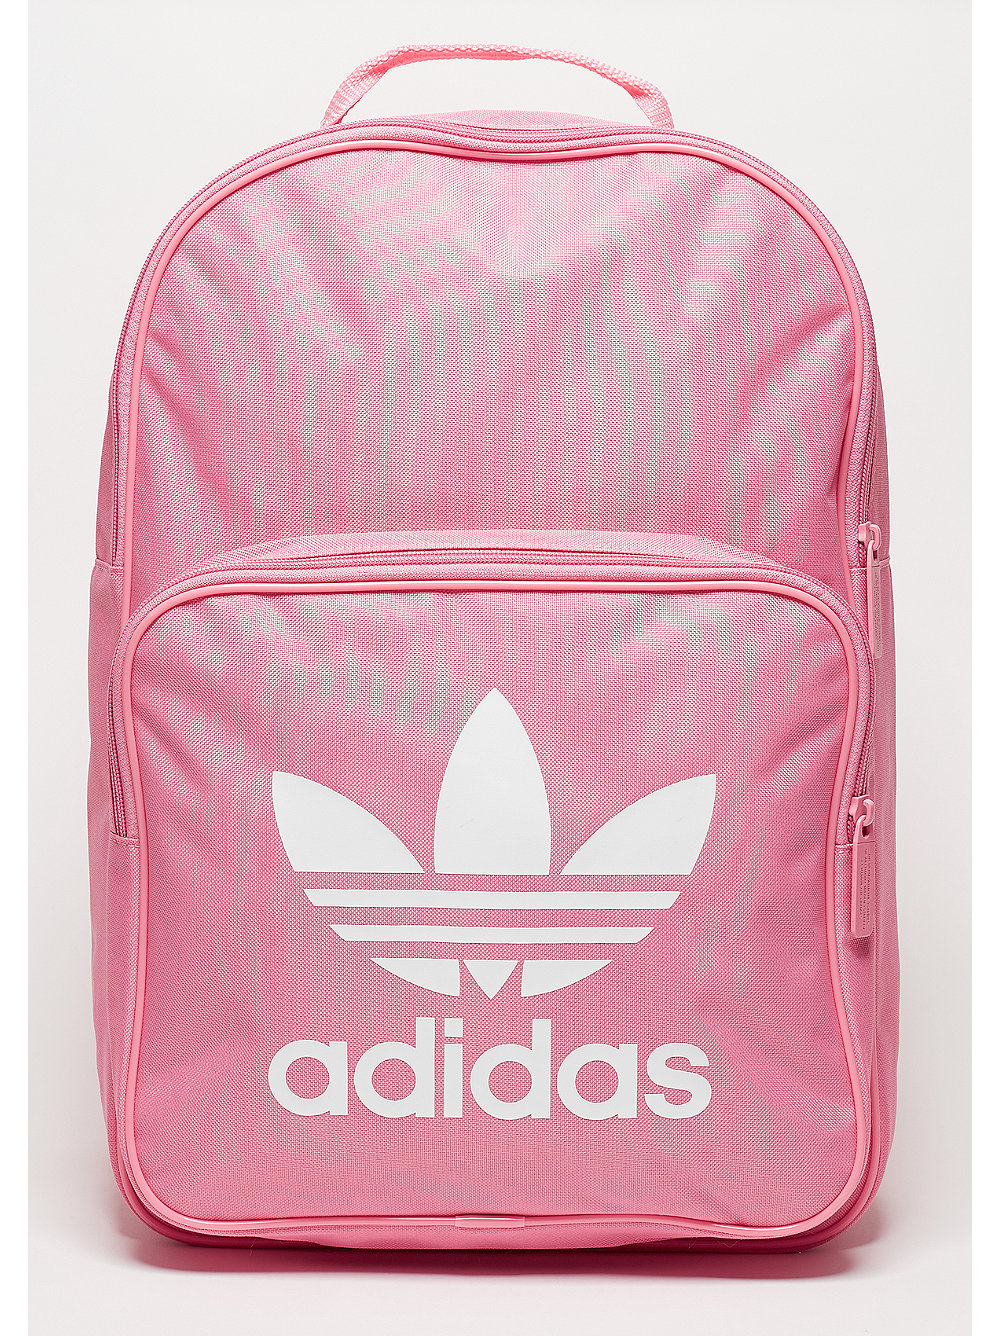 adidas Classic Trefoil easy pink